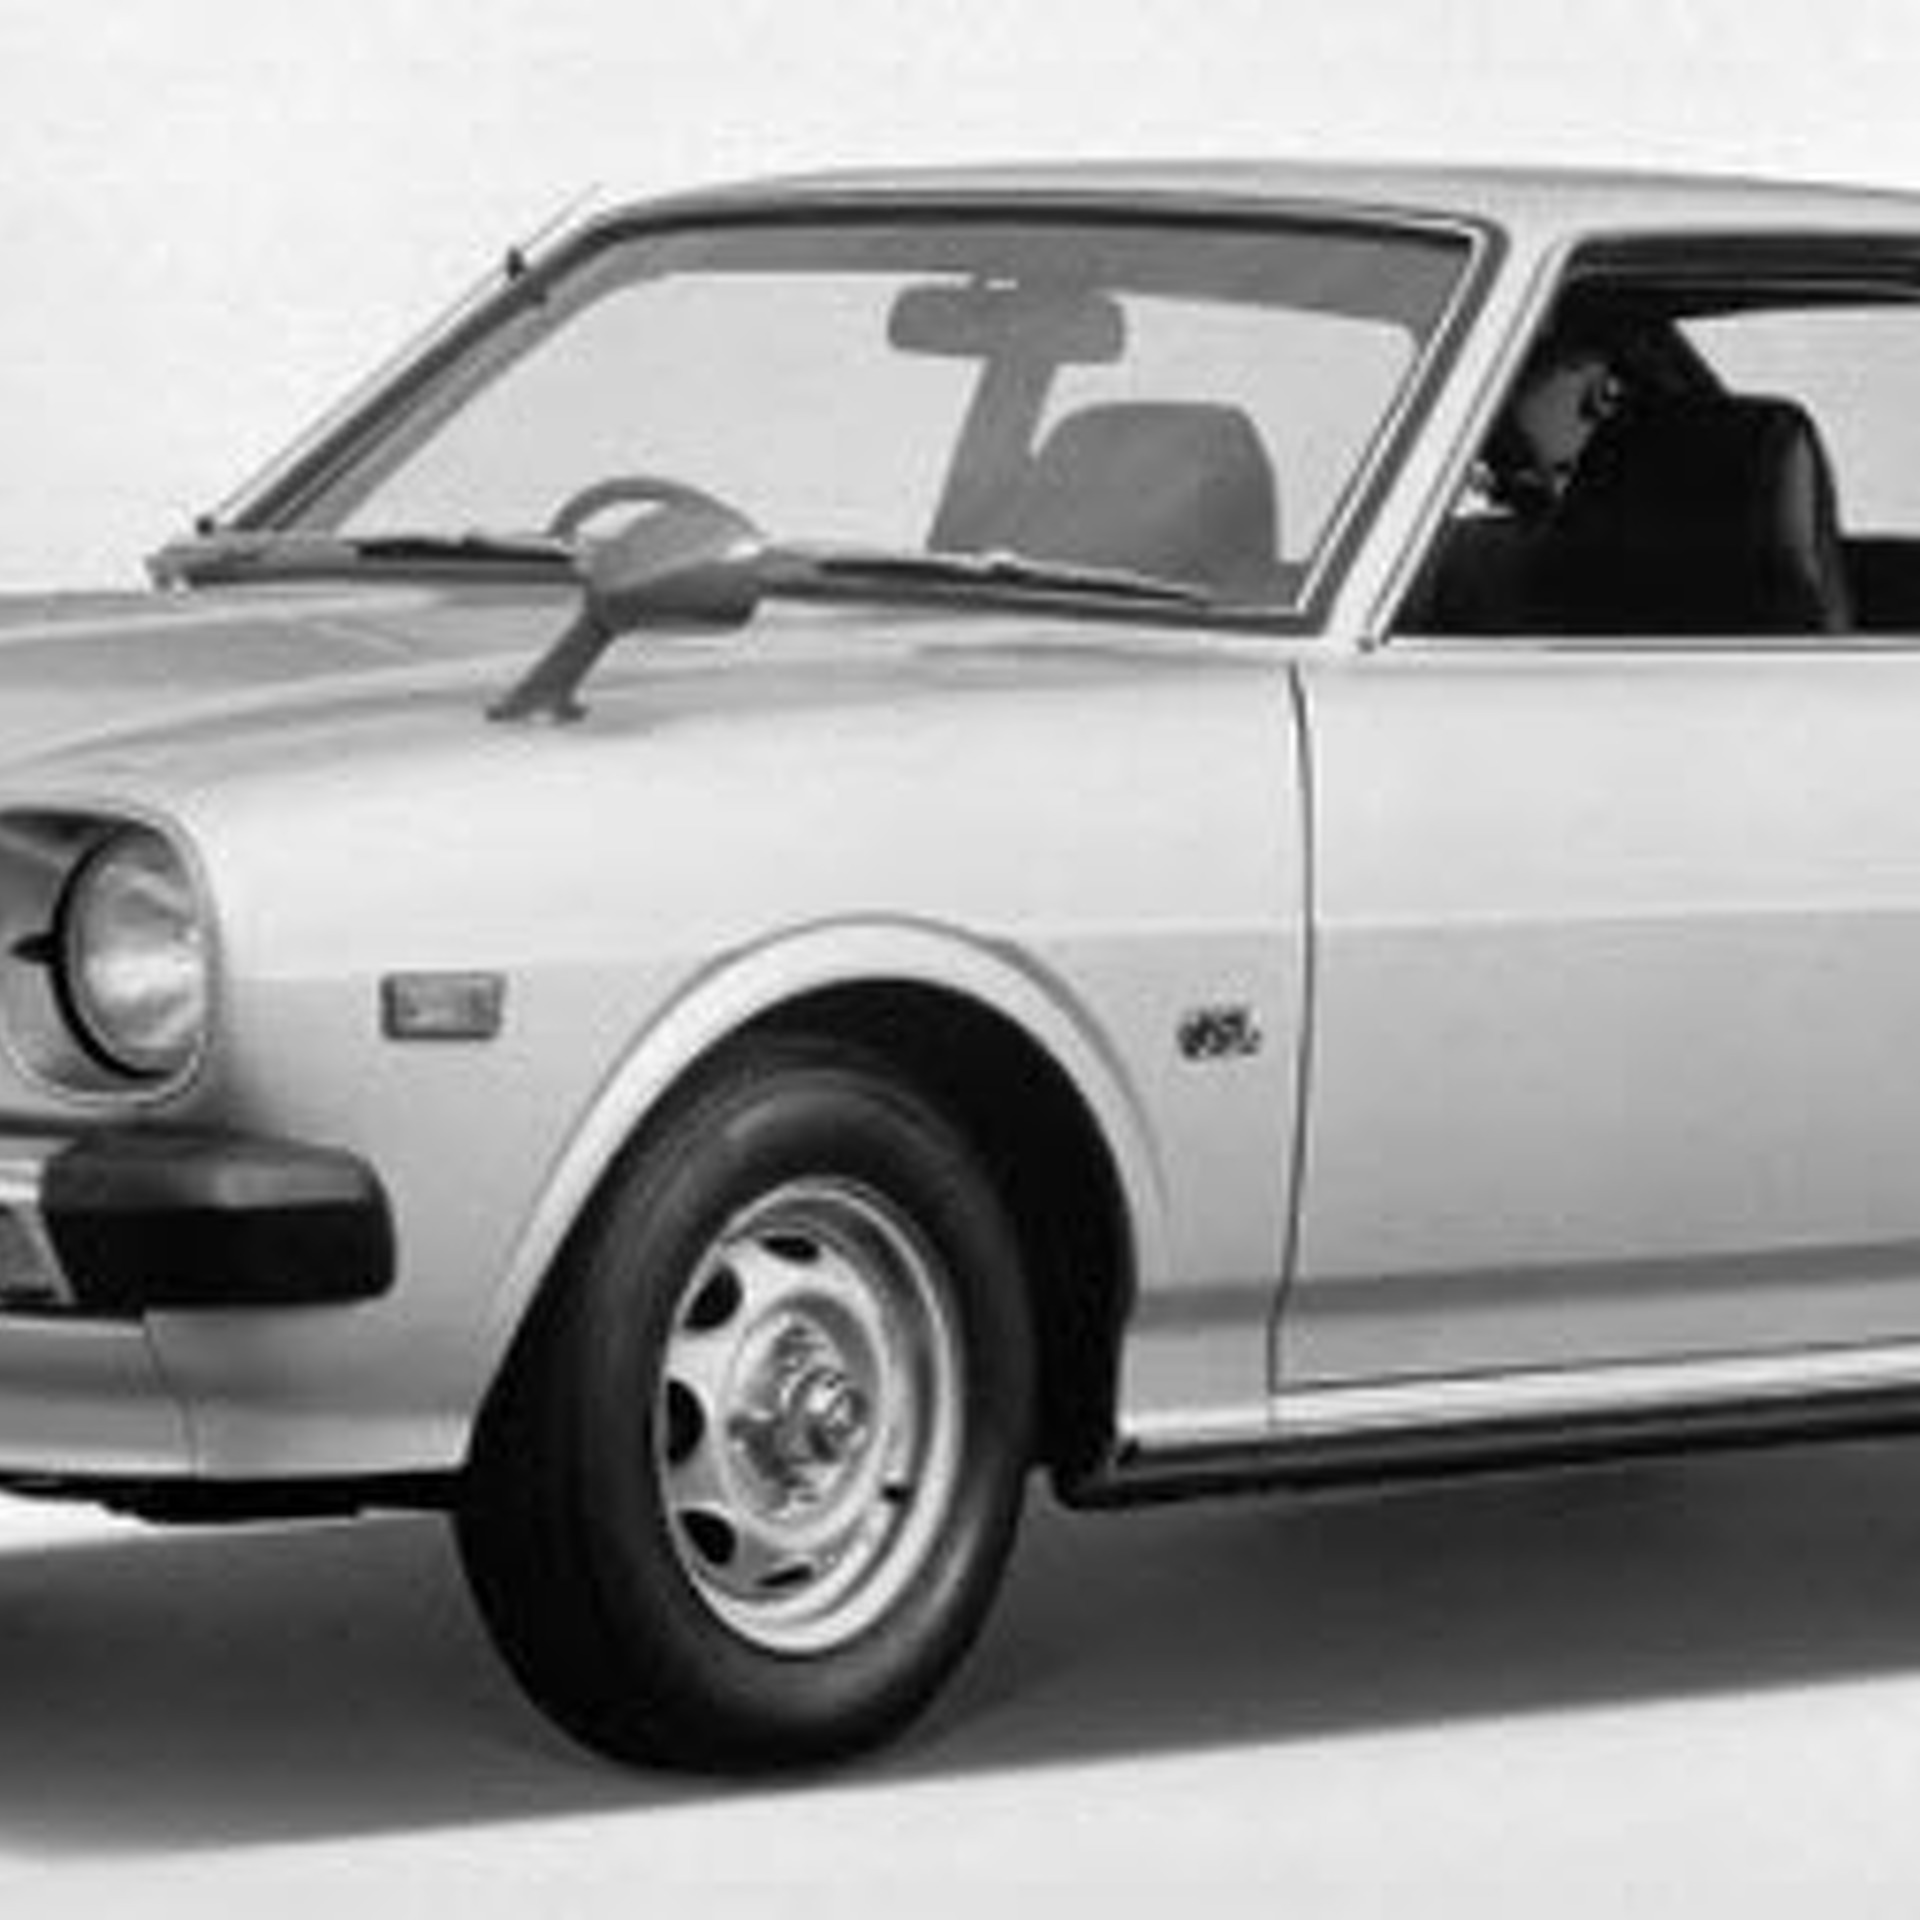 10 Reasons Cars from the 1970s Don't Suck